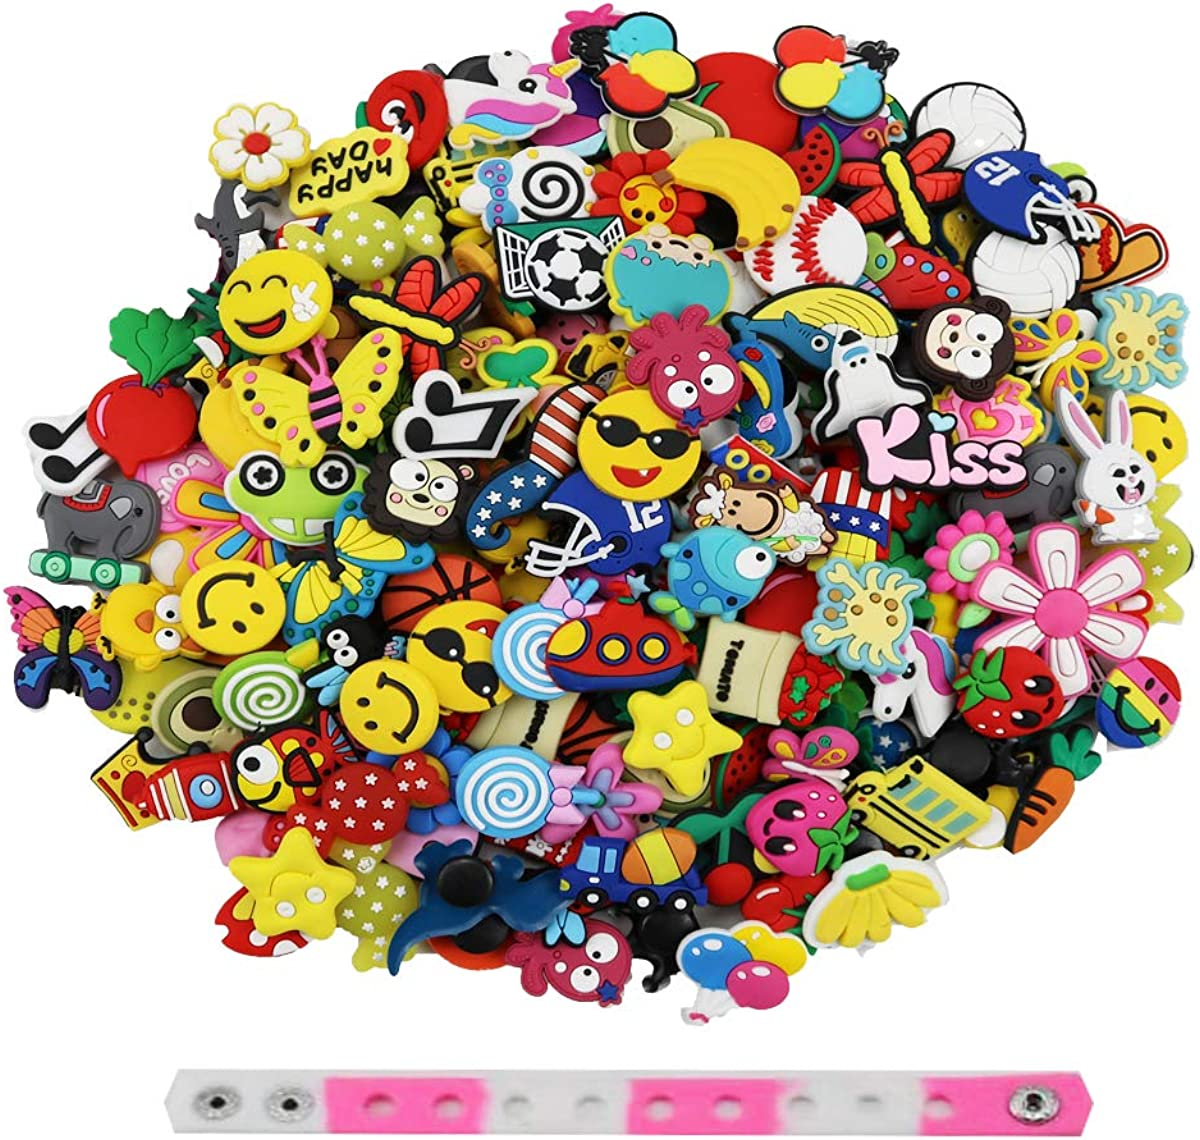 SYSQLP Shoe Sale price Charms Pins Accessories Pack Girls for Boys Teens W Credence